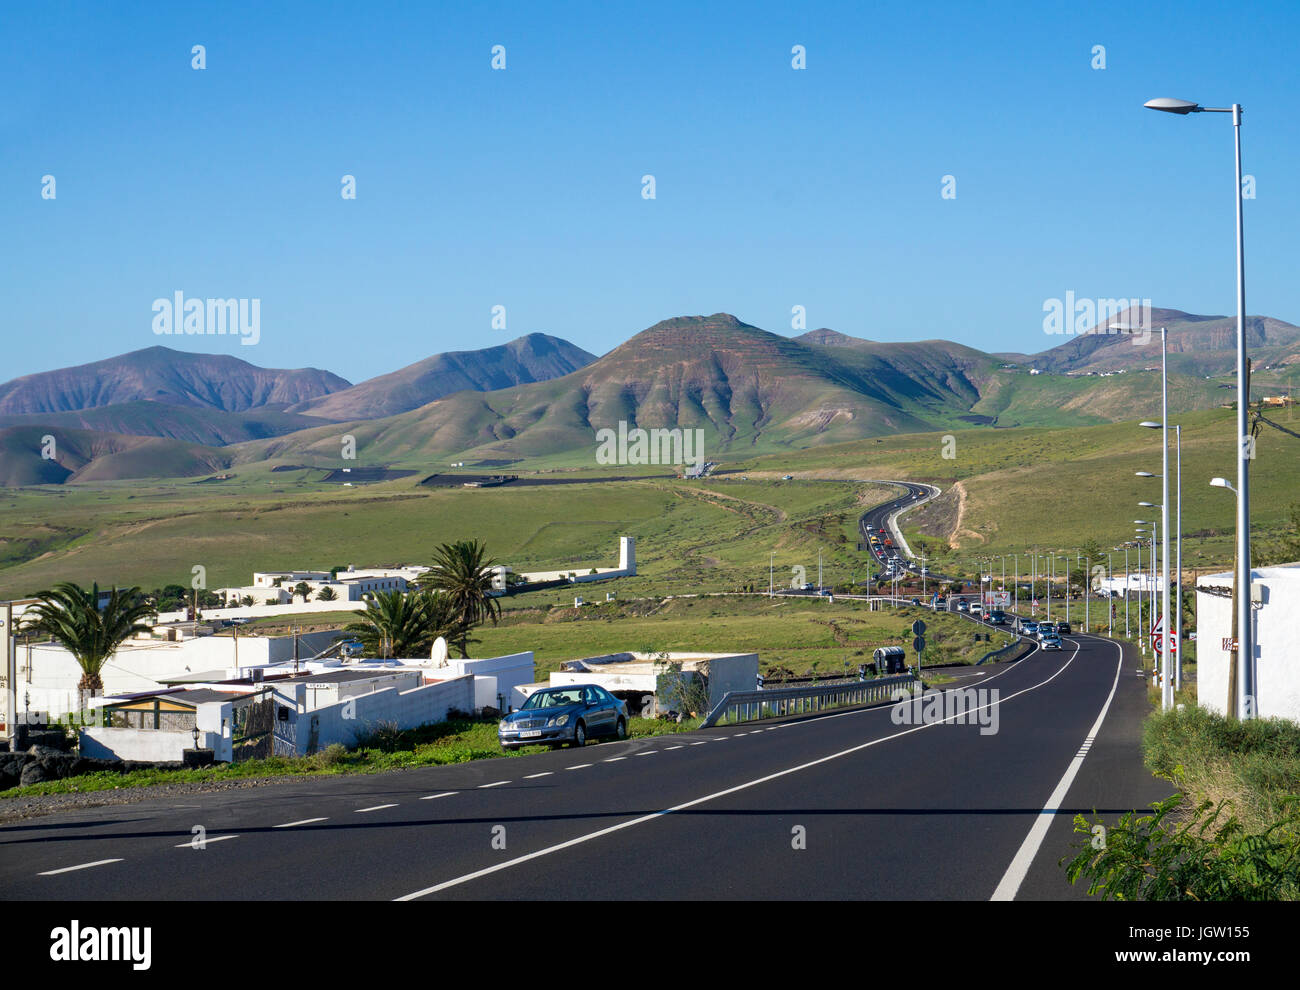 Road from Macher to Uga, Lanzarote island, Canary islands, Spain, Europe Stock Photo